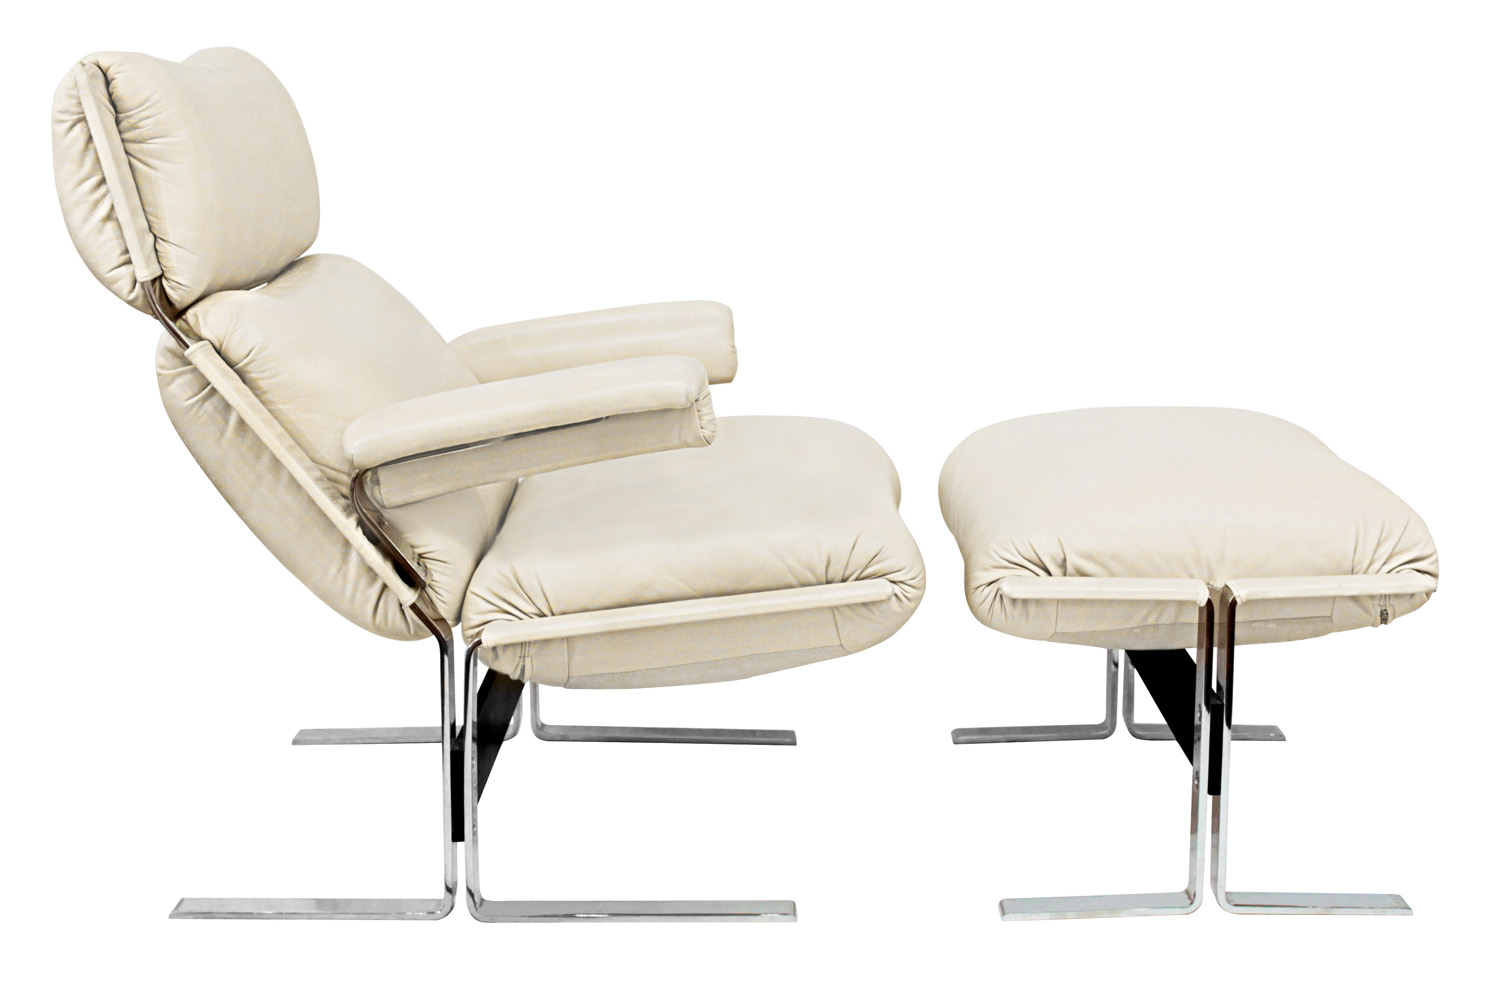 Saporiti 75 steel and leather chair&ottoman47 detail1 hires.jpg